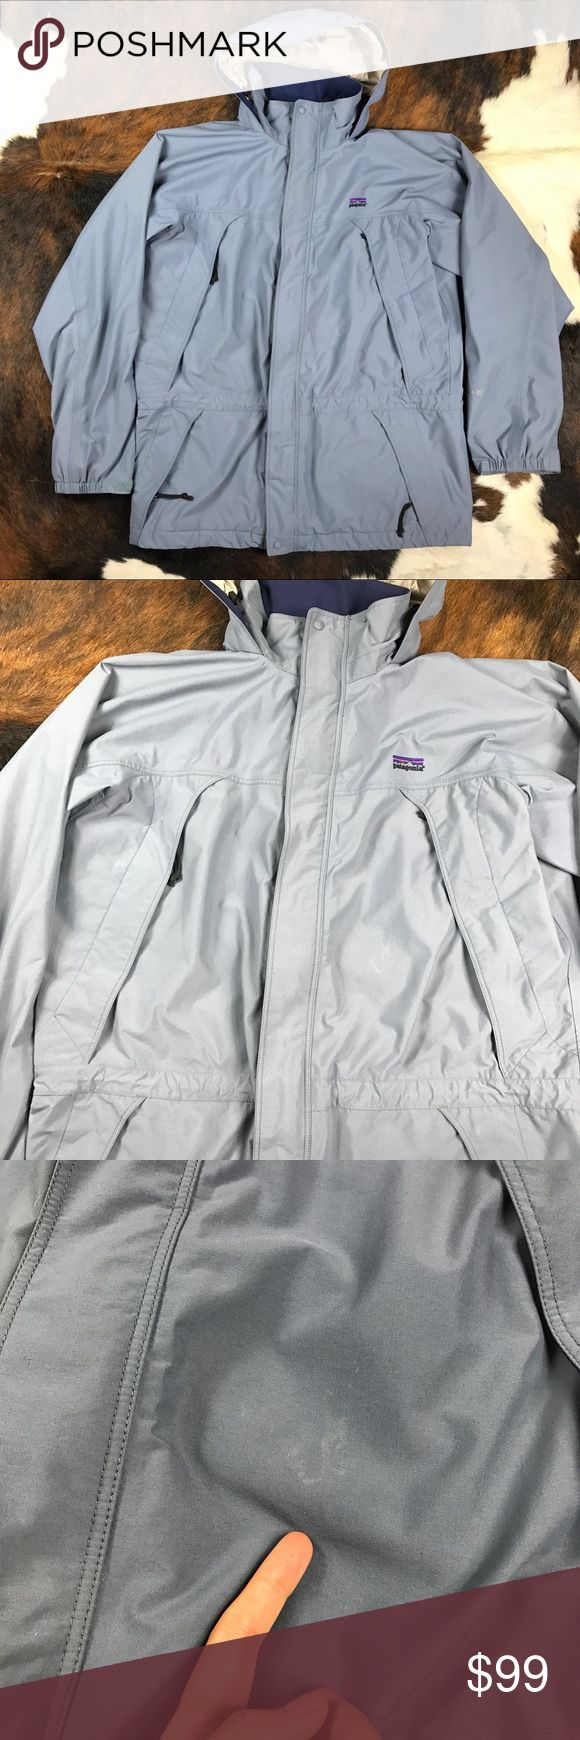 Patagonia Liquid Sky Gore Tex Rain Jacket Patagonia Liquid Sky Mens Larg Gore Tex Hood Long Full Zip Shell Rain Jacket  Just a few signs of wear(see pictures) , nothing major. Overall Great condition, just washed jacket. From smoke free home.  Measurements (approx): pit to pit: 26 inches,  shoulder to bottom: 32.5 inches, sleeve: 26 inches Patagonia Jackets & Coats Raincoats